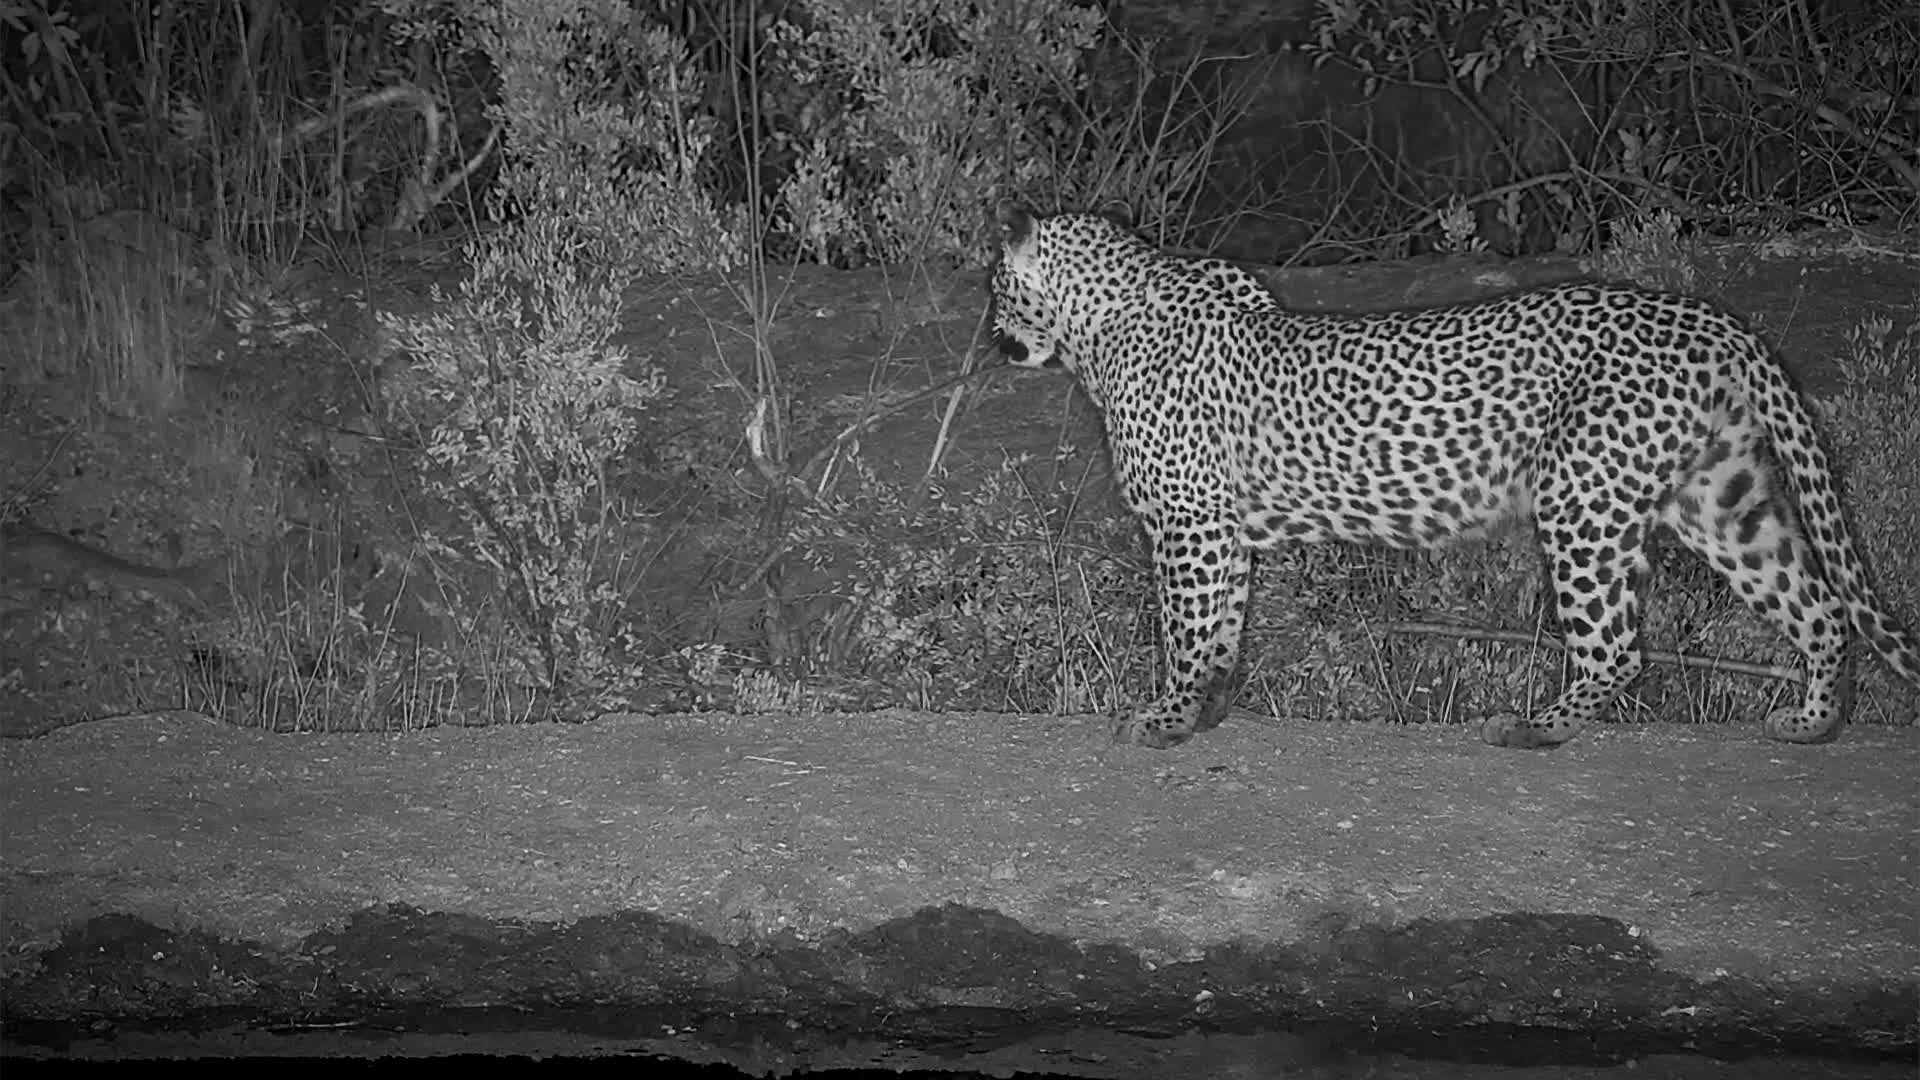 VIDEO: Leopard at the waterhole